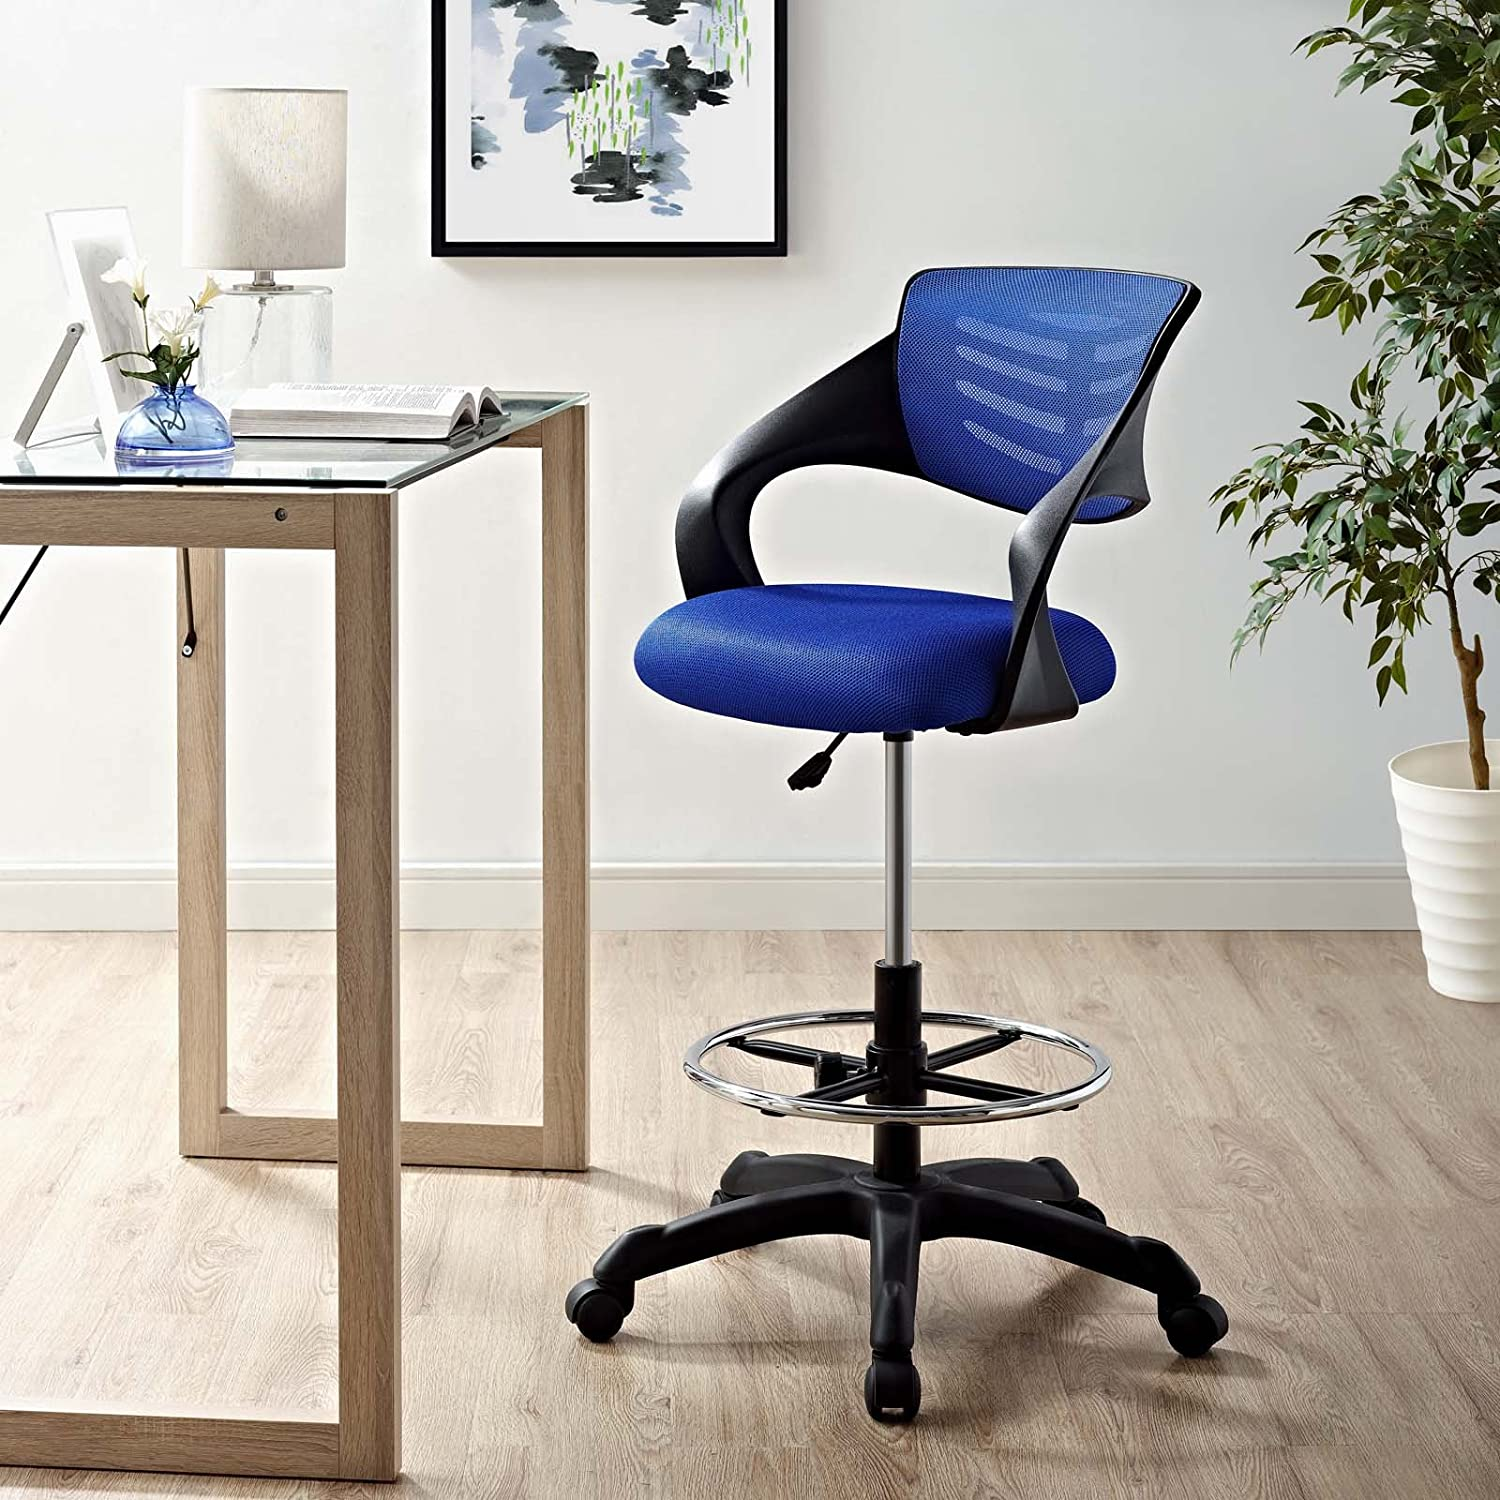 Amazon Com Modway Thrive Drafting Chair Tall Office Chair For Adjustable Standing Desks In Blue Furniture Decor